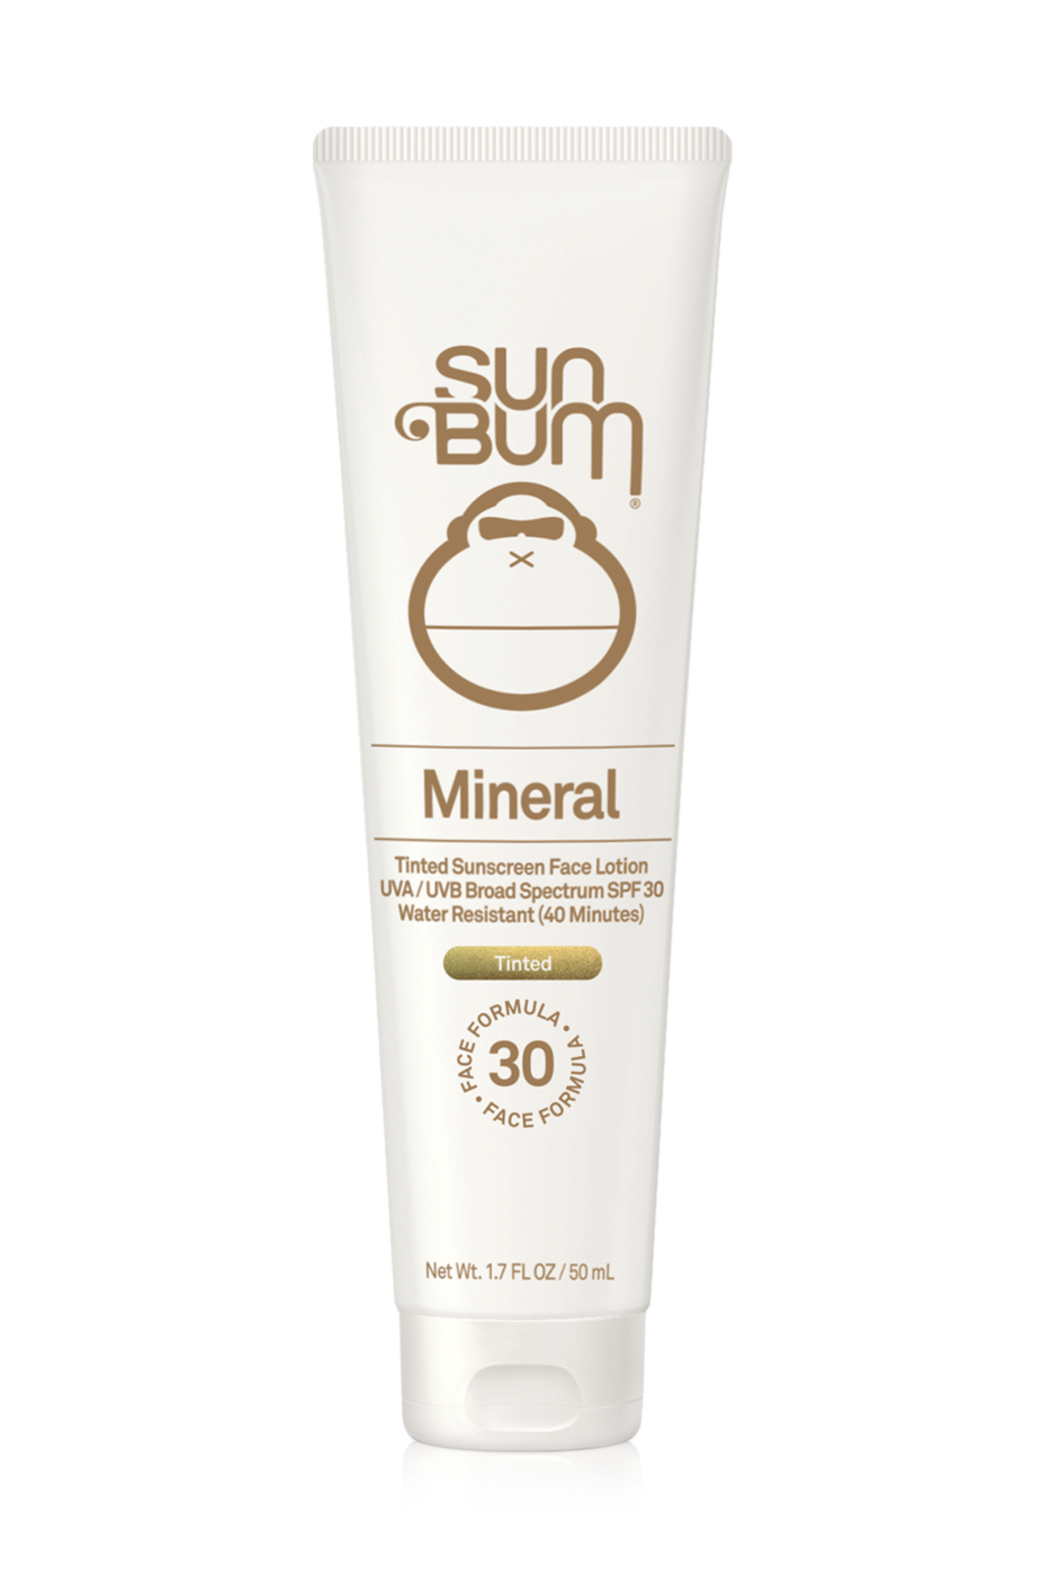 Sun Bum Mineral SPF 30 Tinted Sunscreen Face Lotion- 1.7oz - Main Image